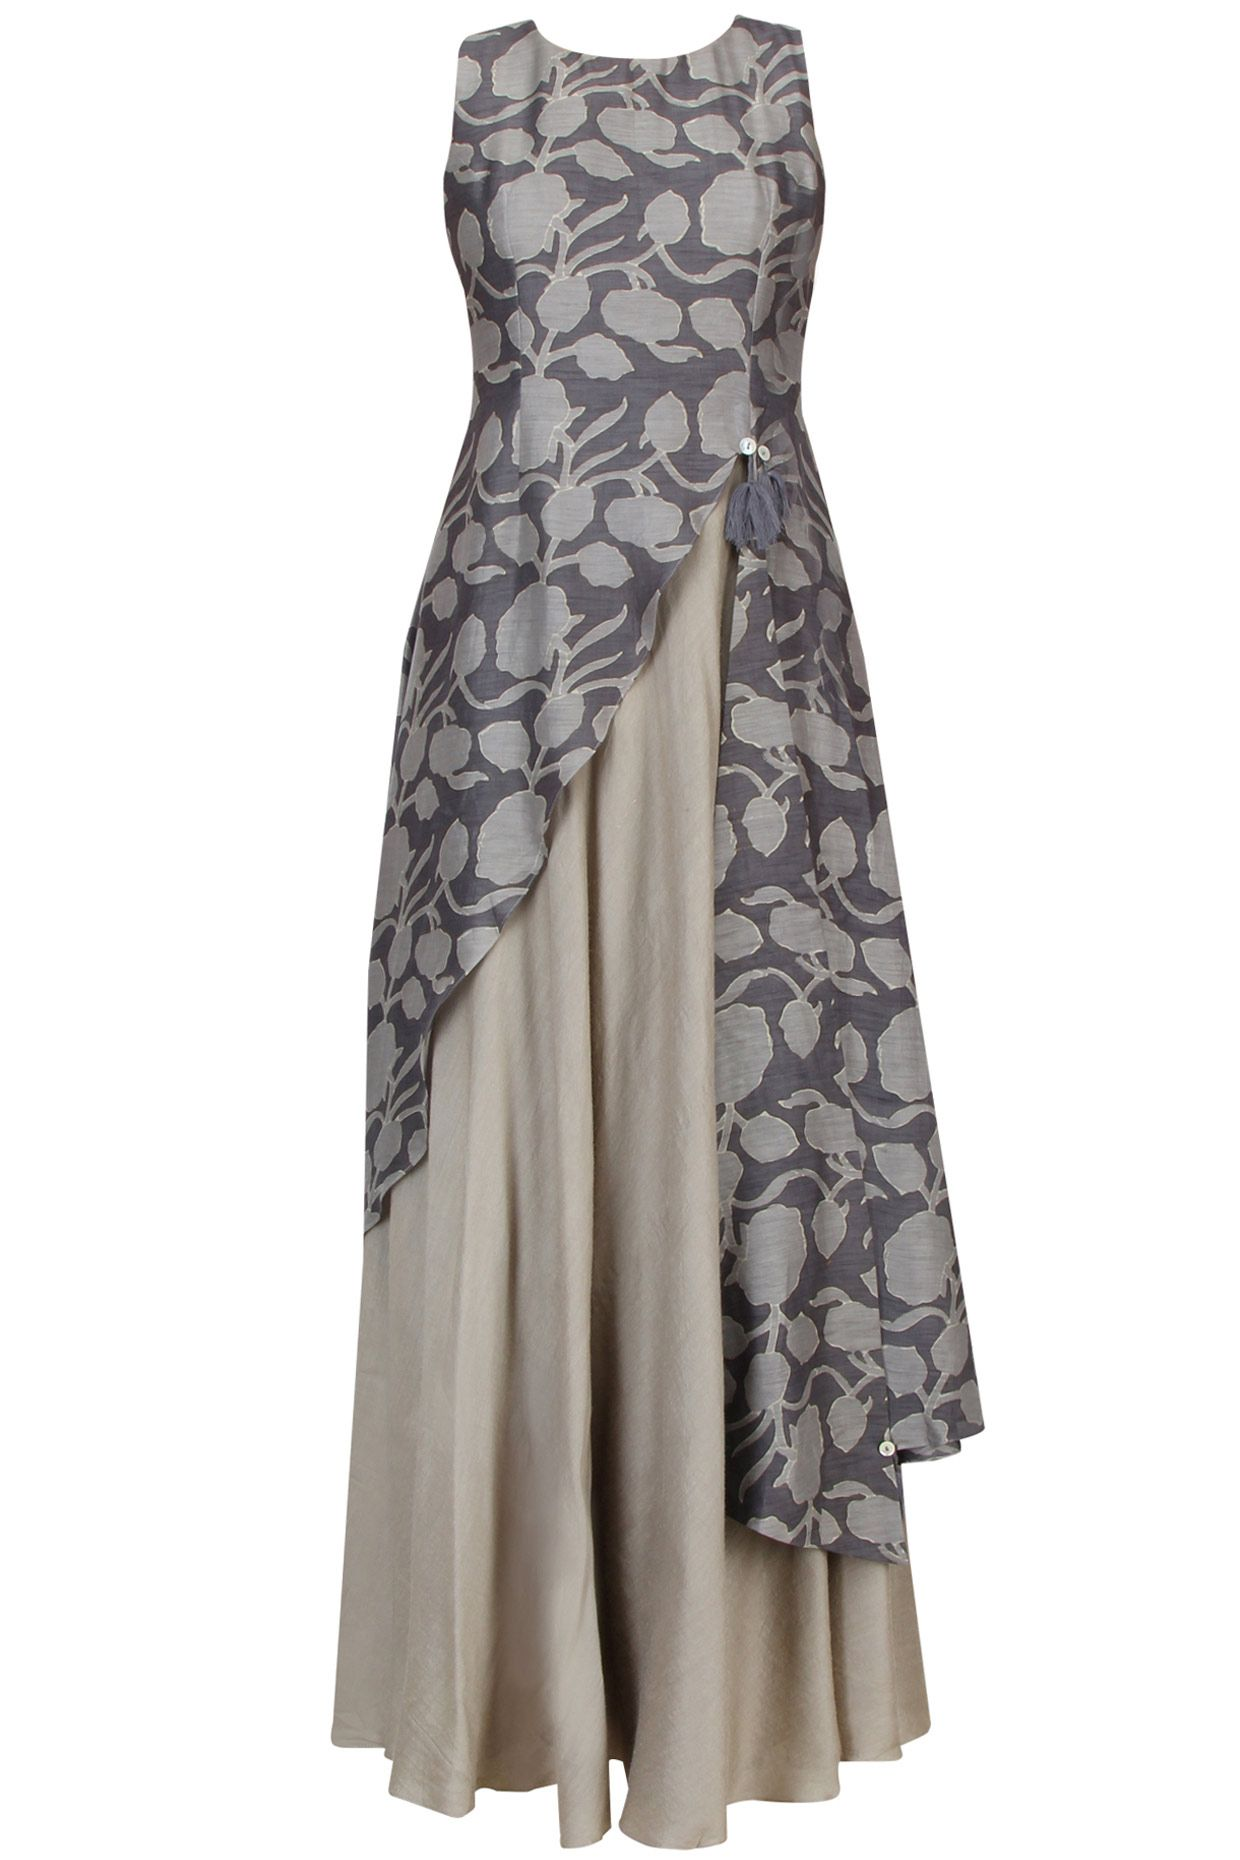 Dark grey floral printed asymmetric maxi dress available only at